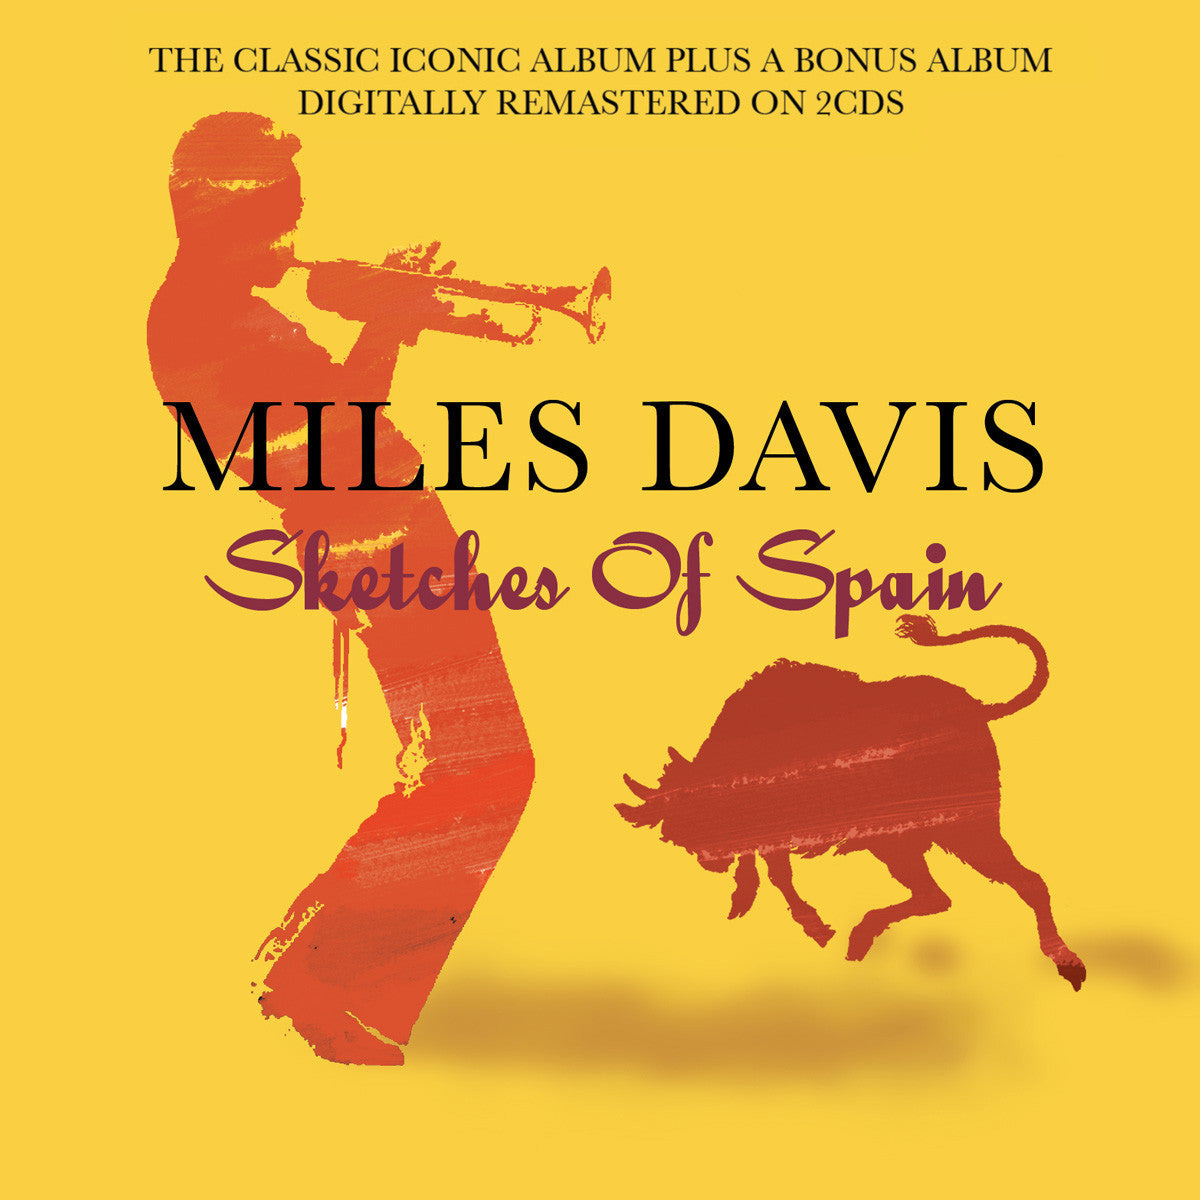 MILES DAVIS: Sketches Of Spain/Miles Davis and The Modern Jazz Giants (2 CDs)